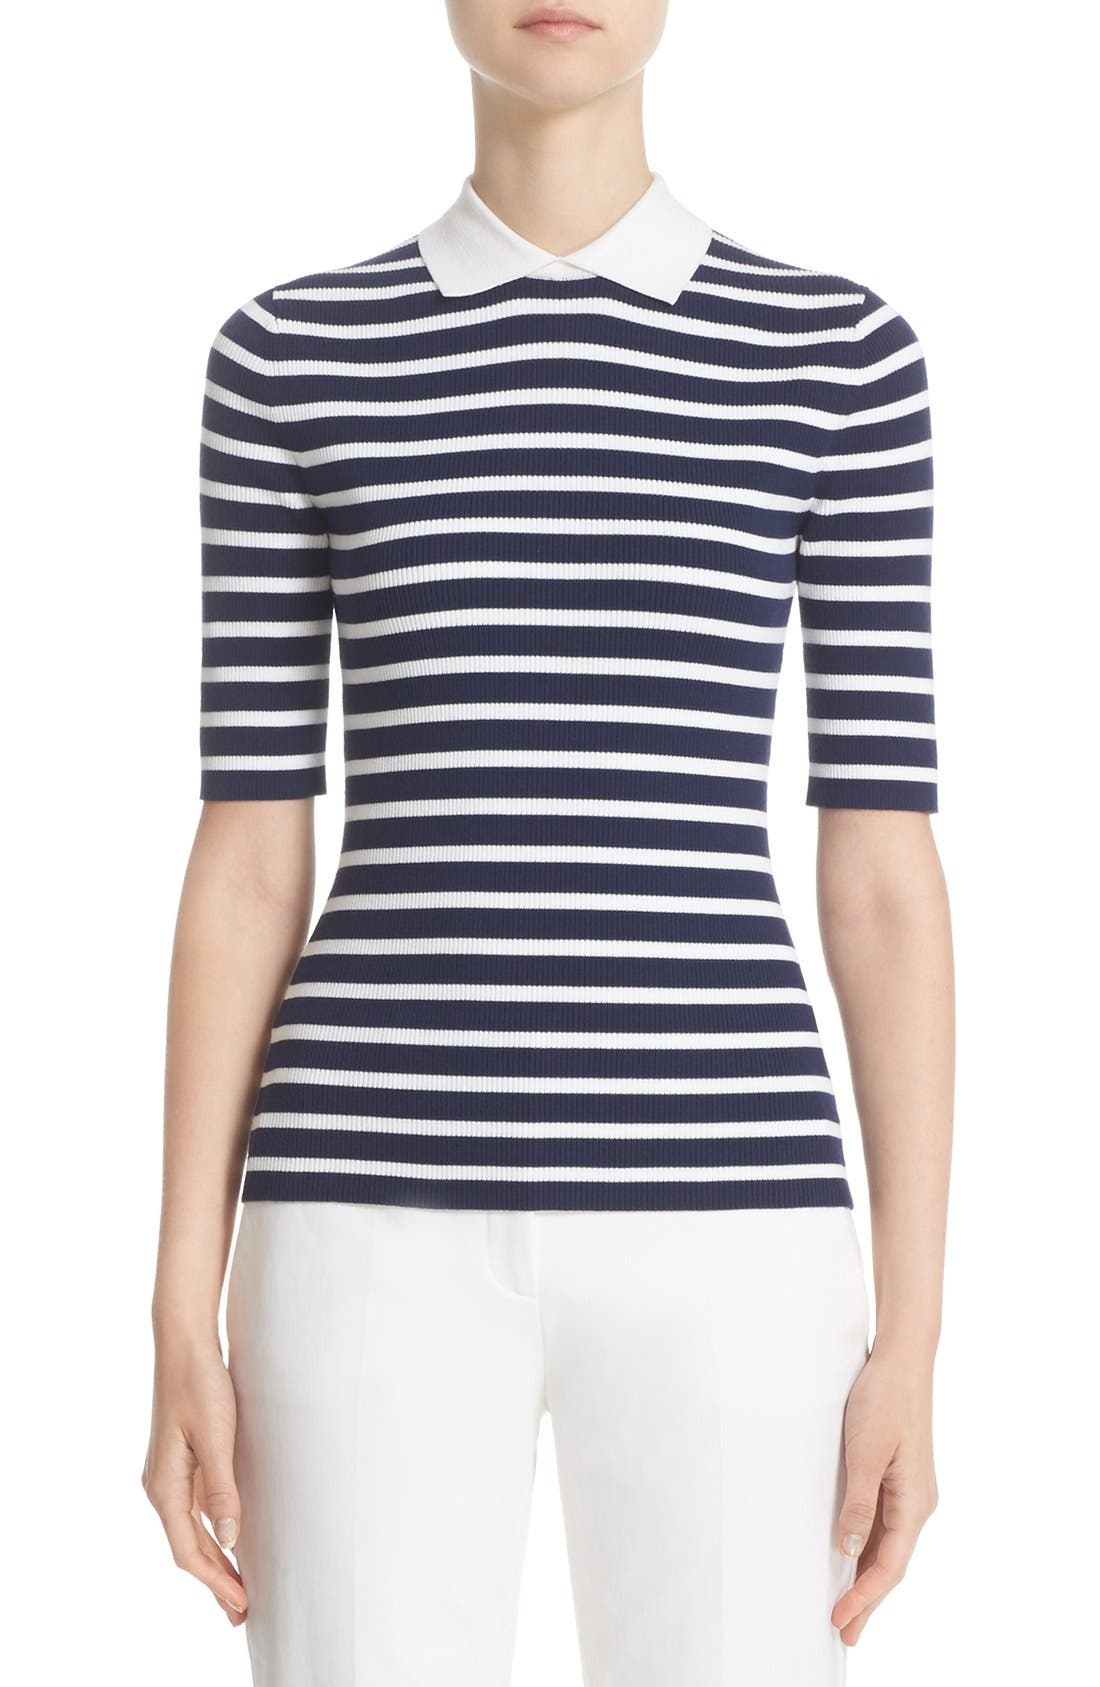 MICHAEL KORS Stripe Elbow Sleeve Top